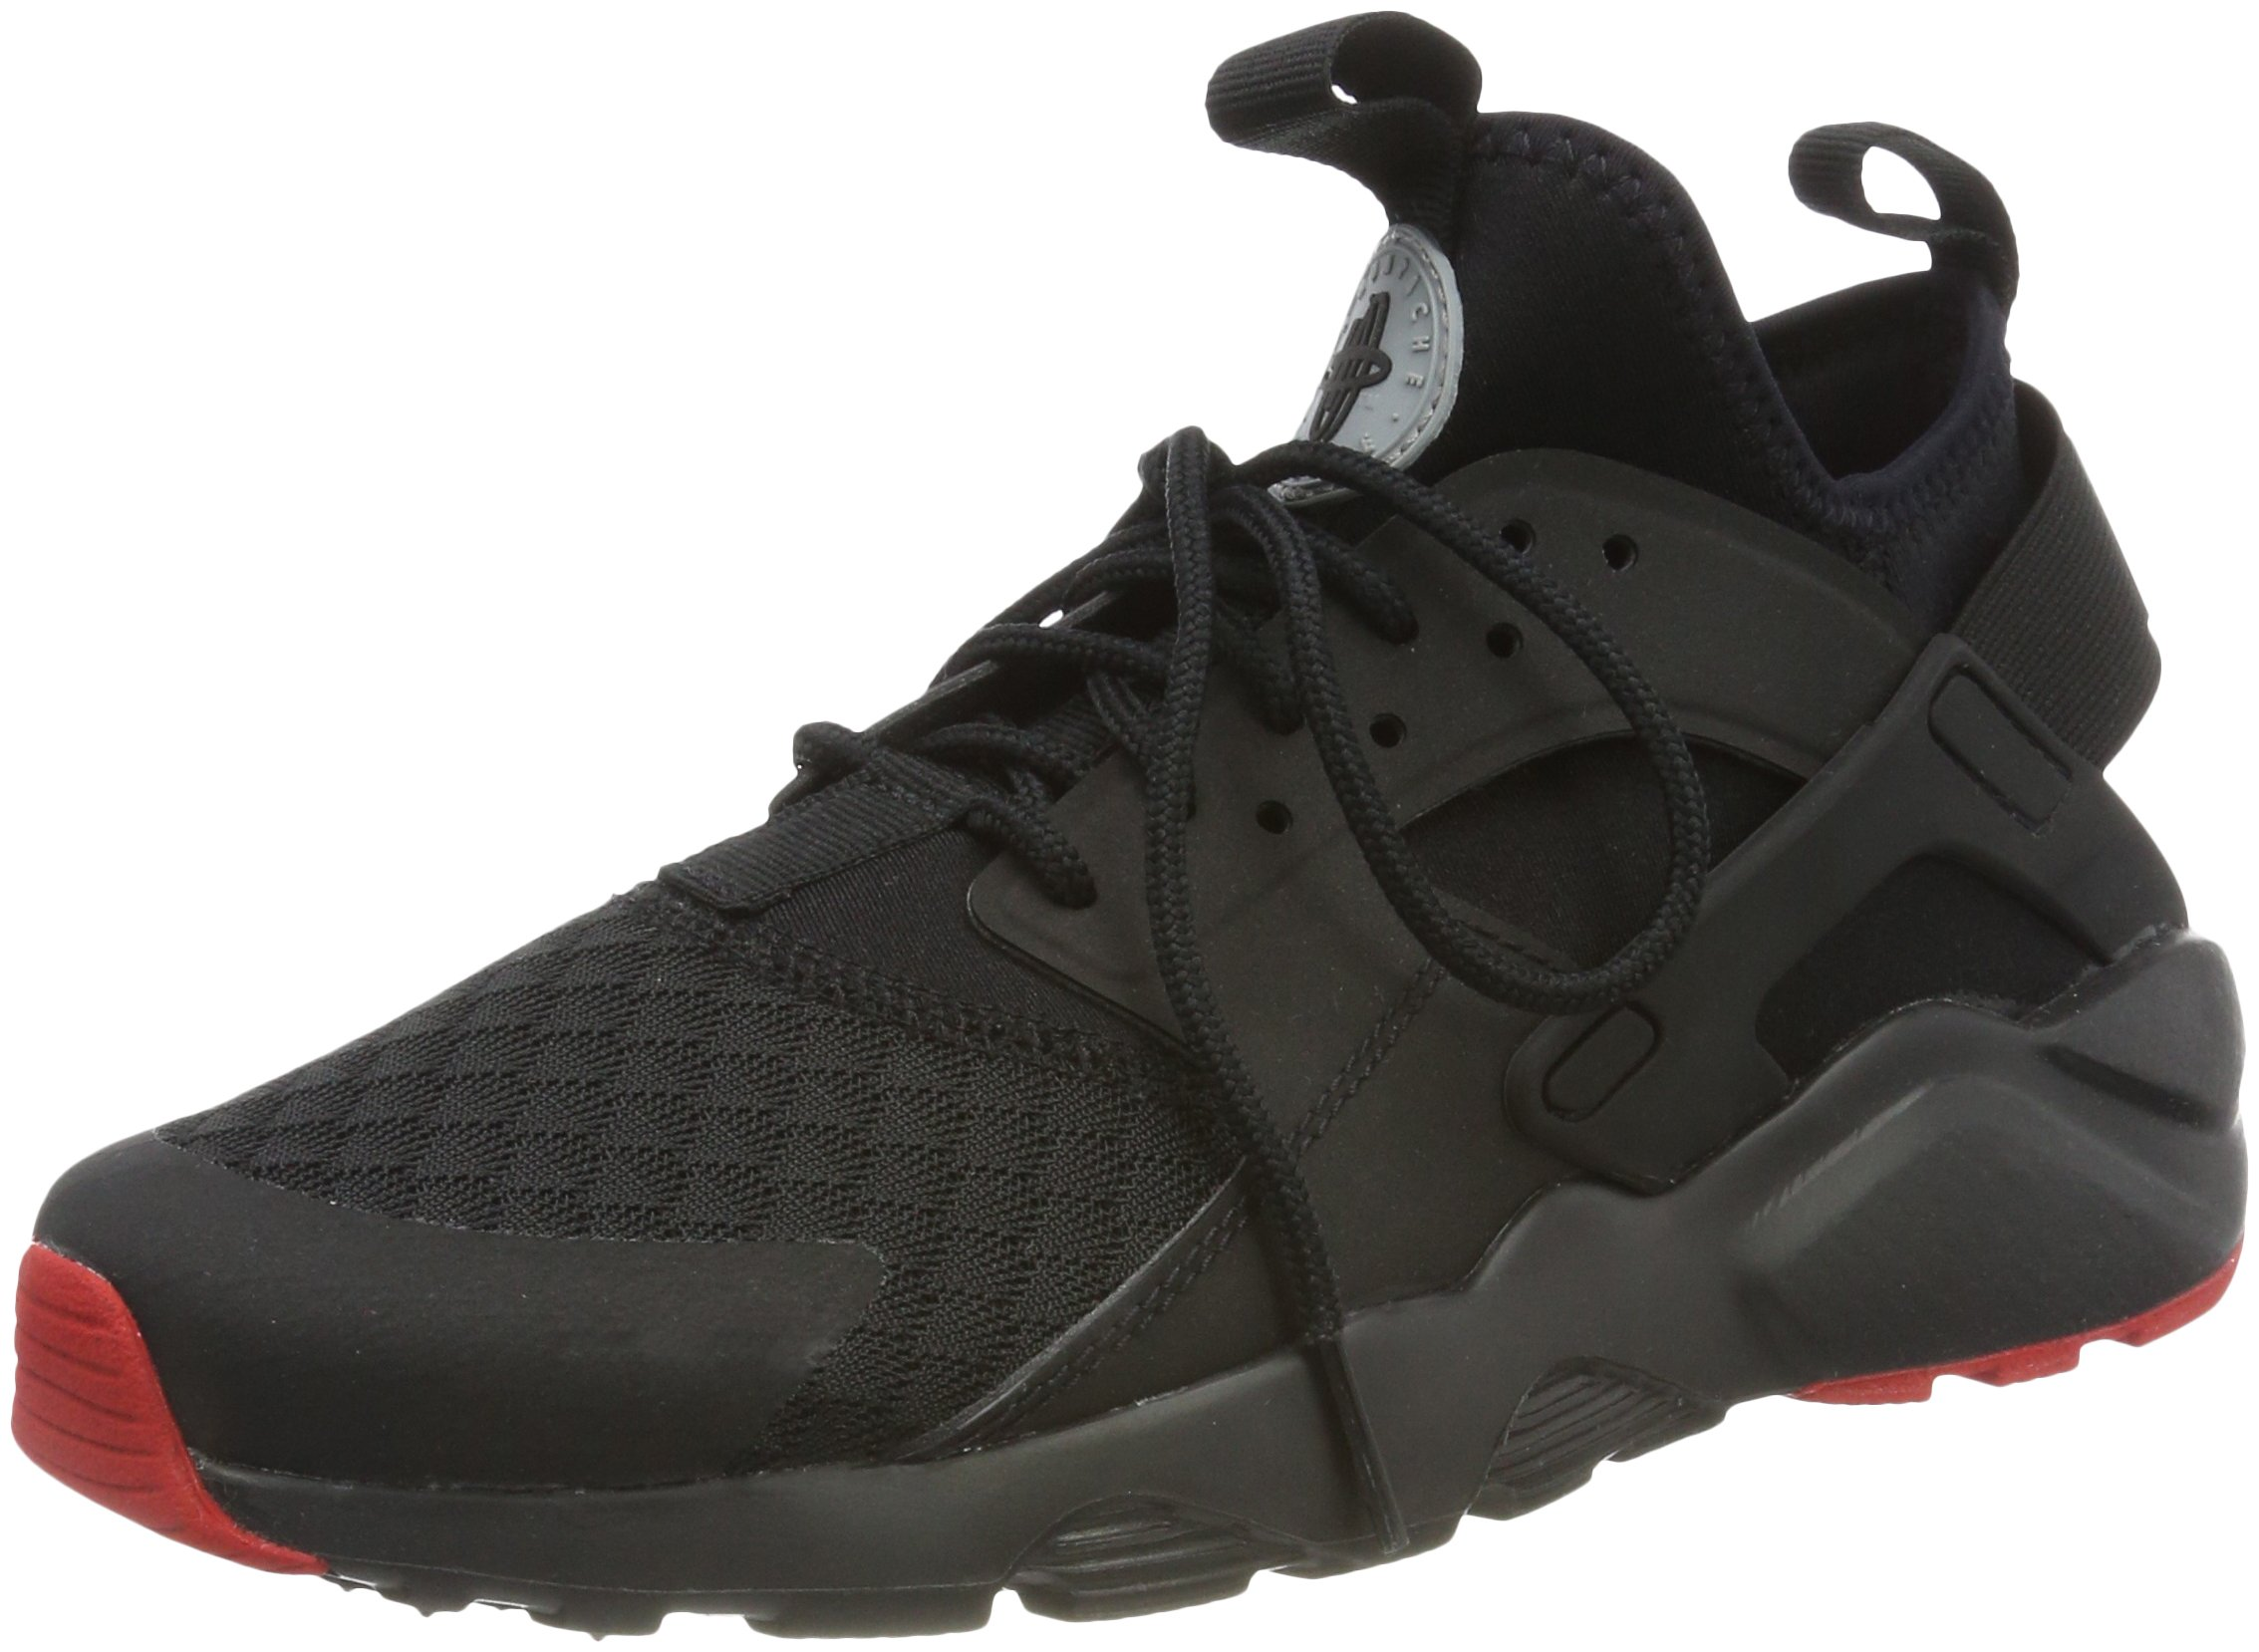 Nike Air Huarache Run Ultra Black/Metallic Silver (11 D(M) US)